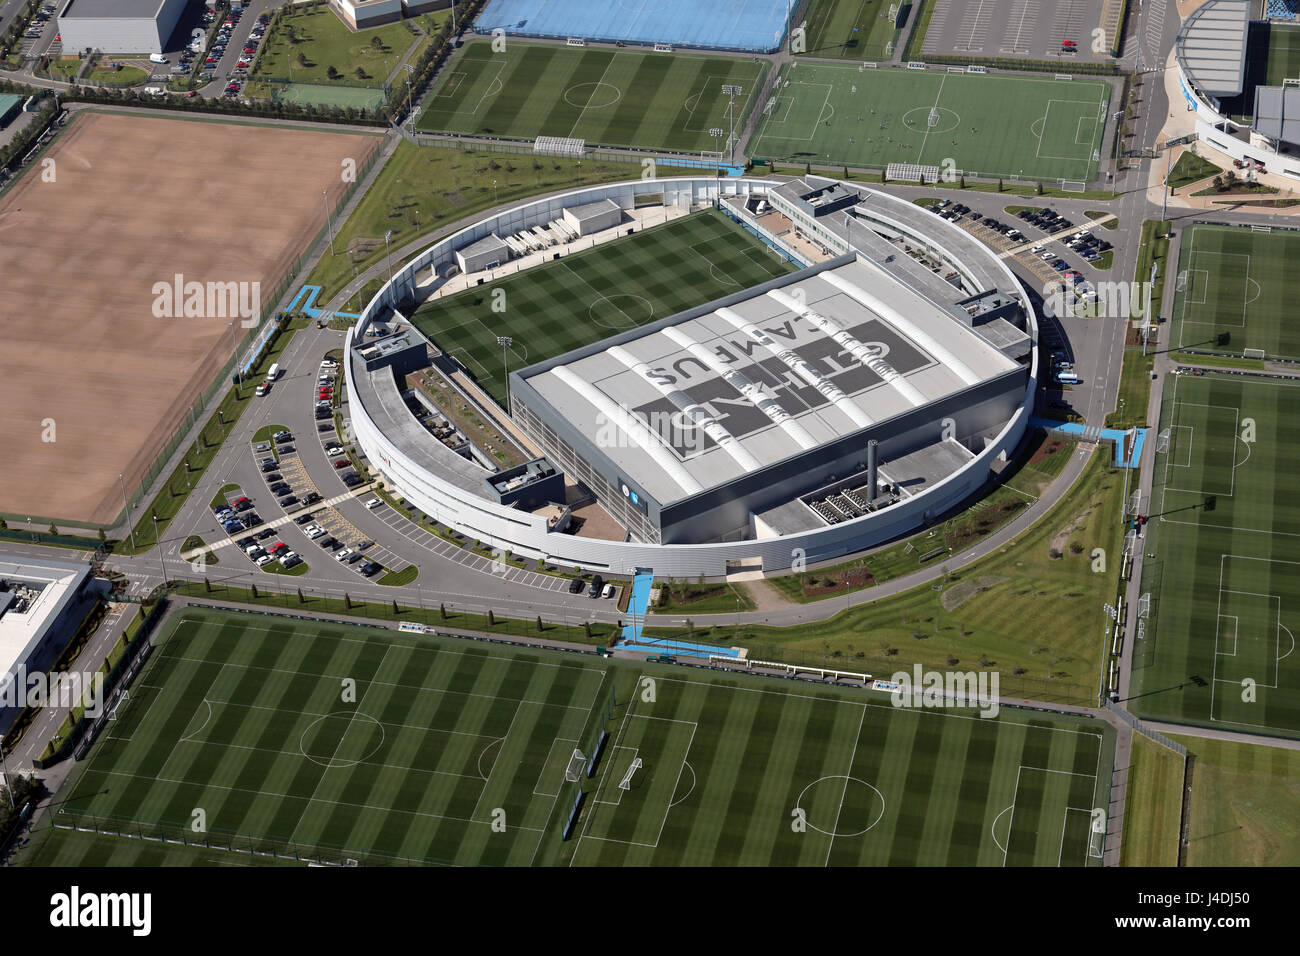 aerial view of the Etihad Campus a Manchester City training facility - Stock Image